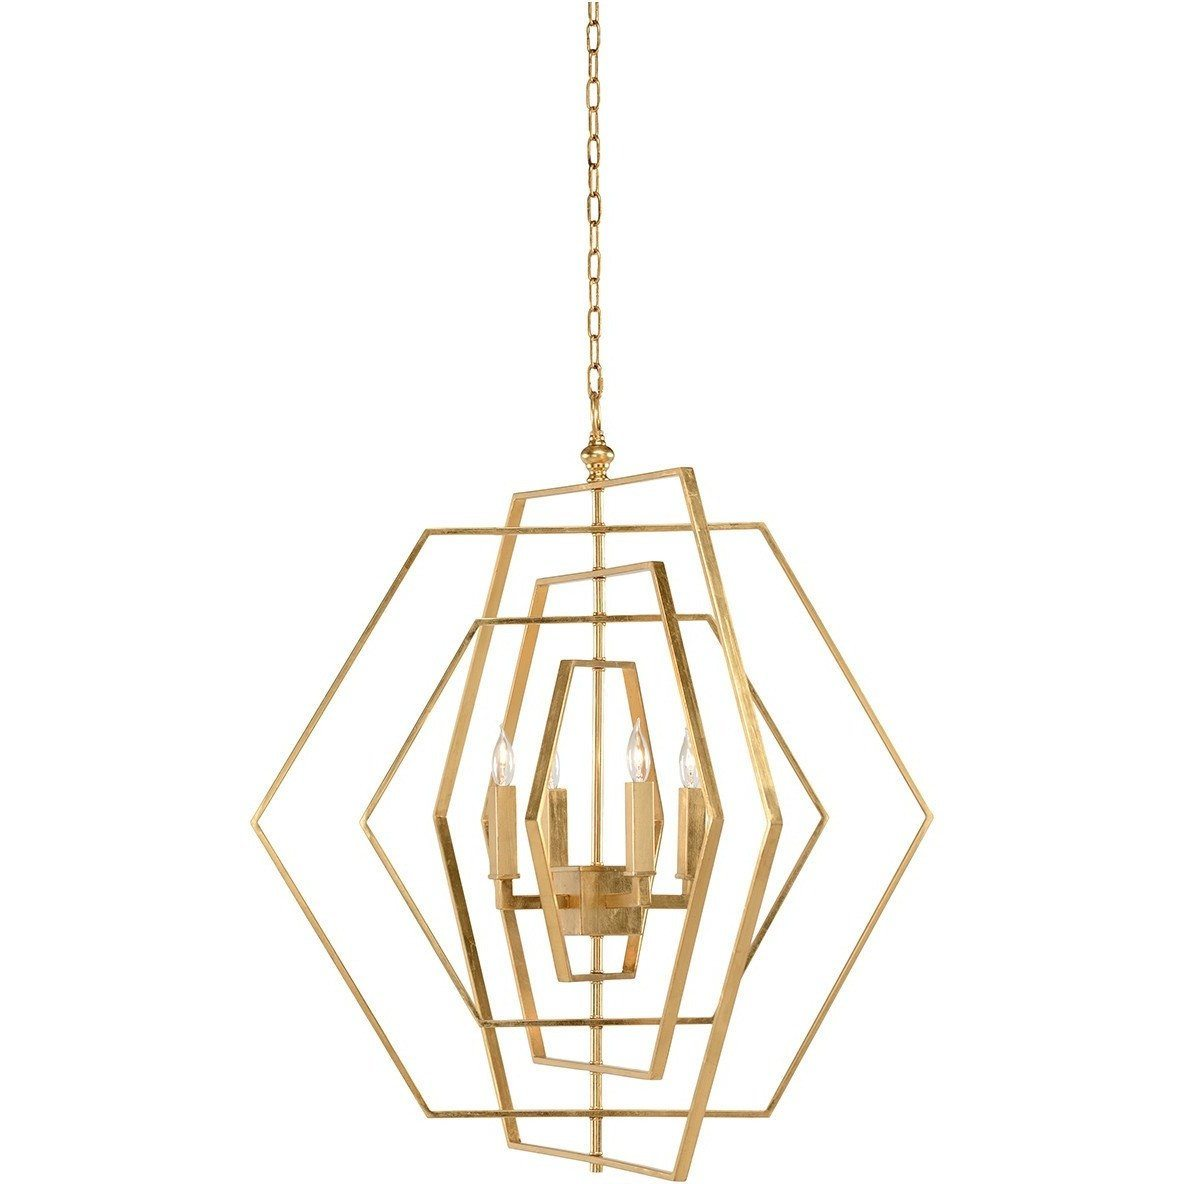 Chelsea House Four Lights Hexagon Chandelier 68746 - LOVECUP - 1